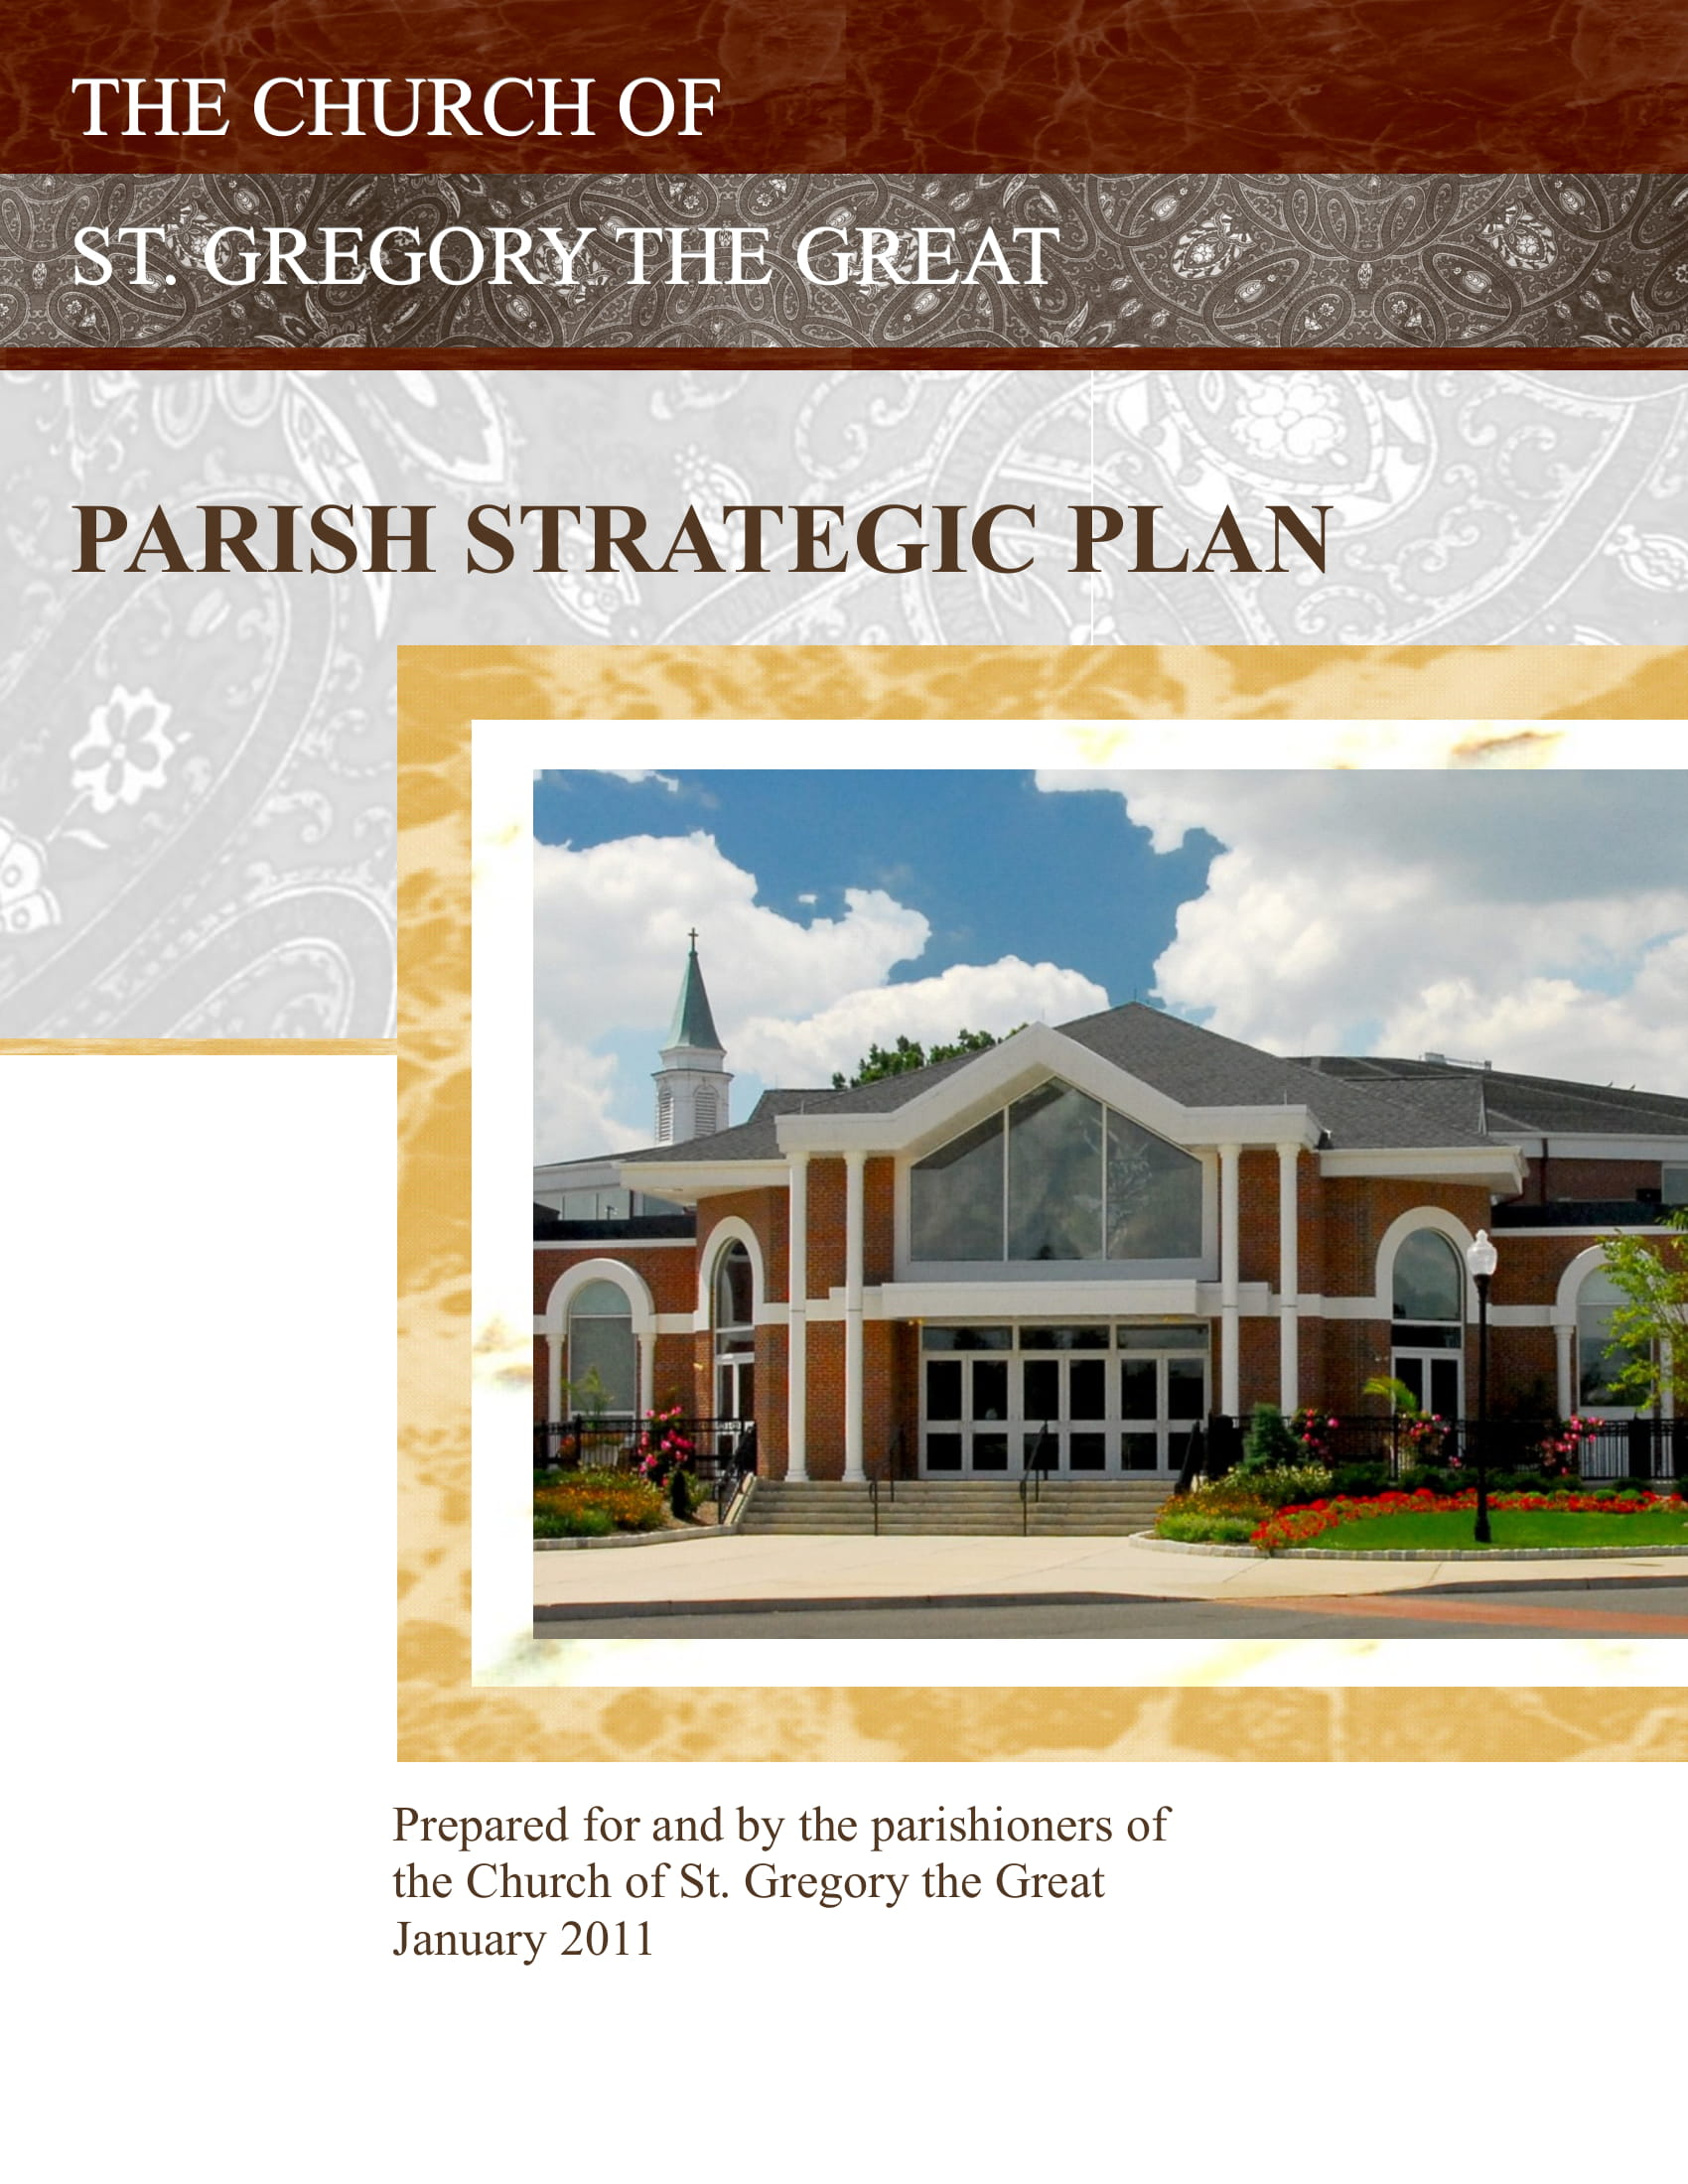 parish church strategic plan and marketing call to actions example 01